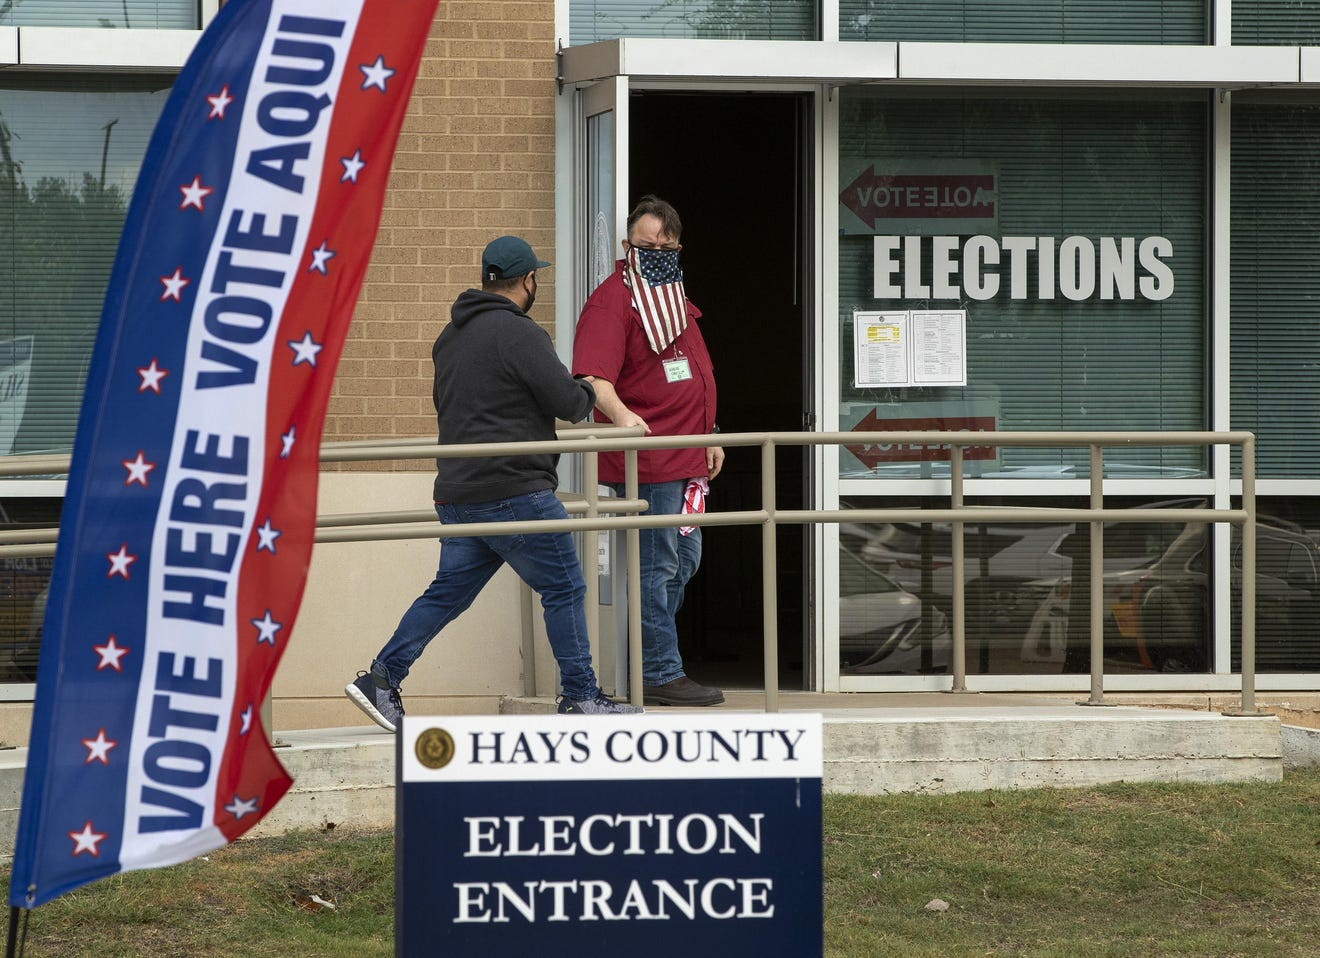 Judge orders face masks at polls in texas